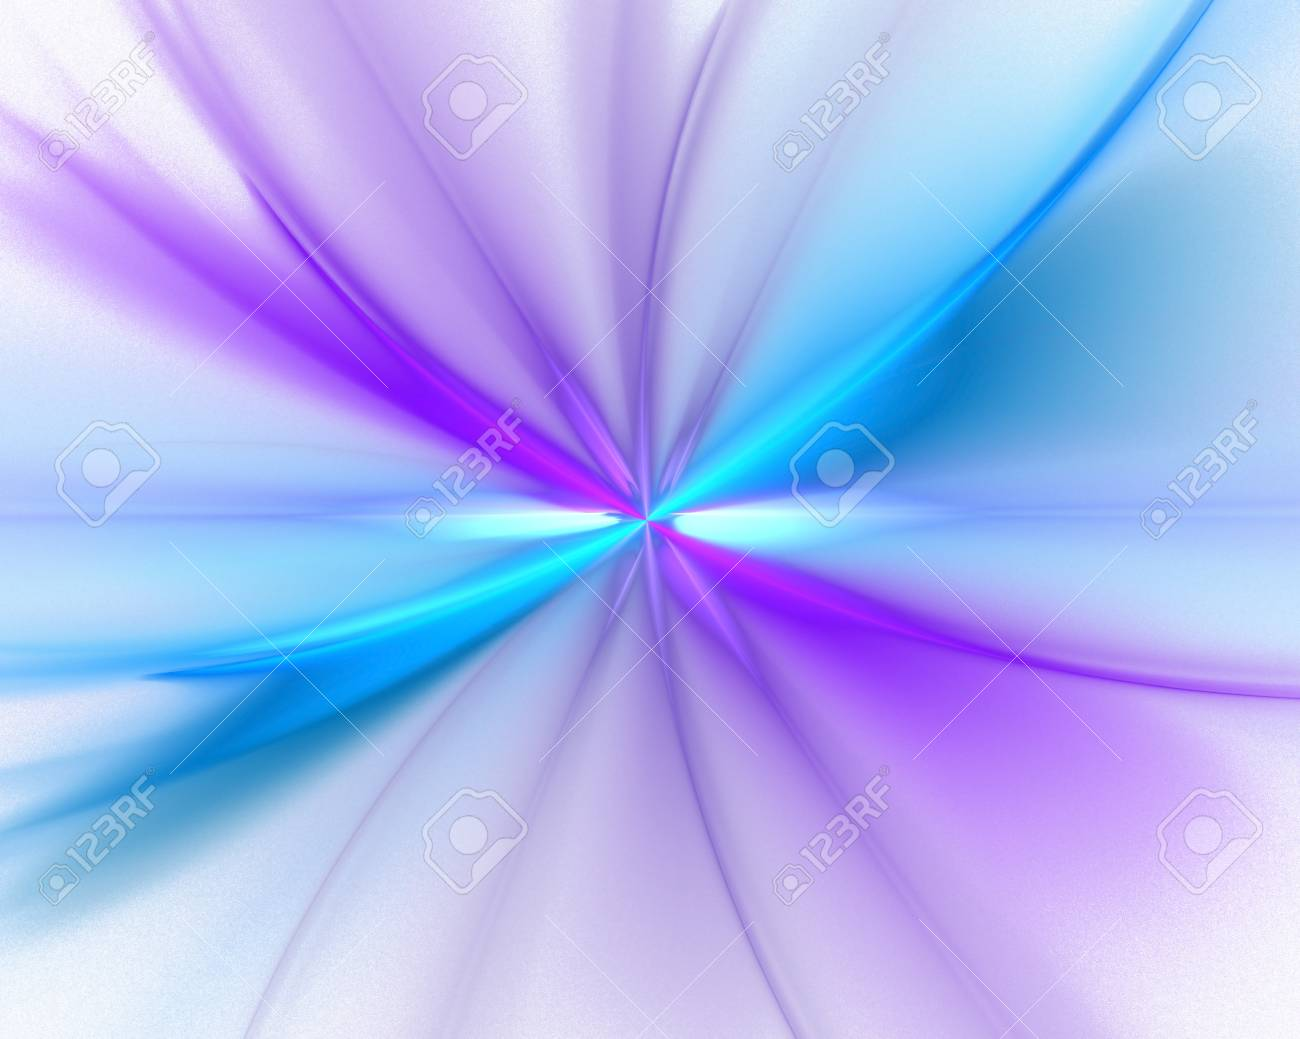 info for 7cfa5 08bec Abstract white background with purple, turquoise and blue color flower or  burst of rays in